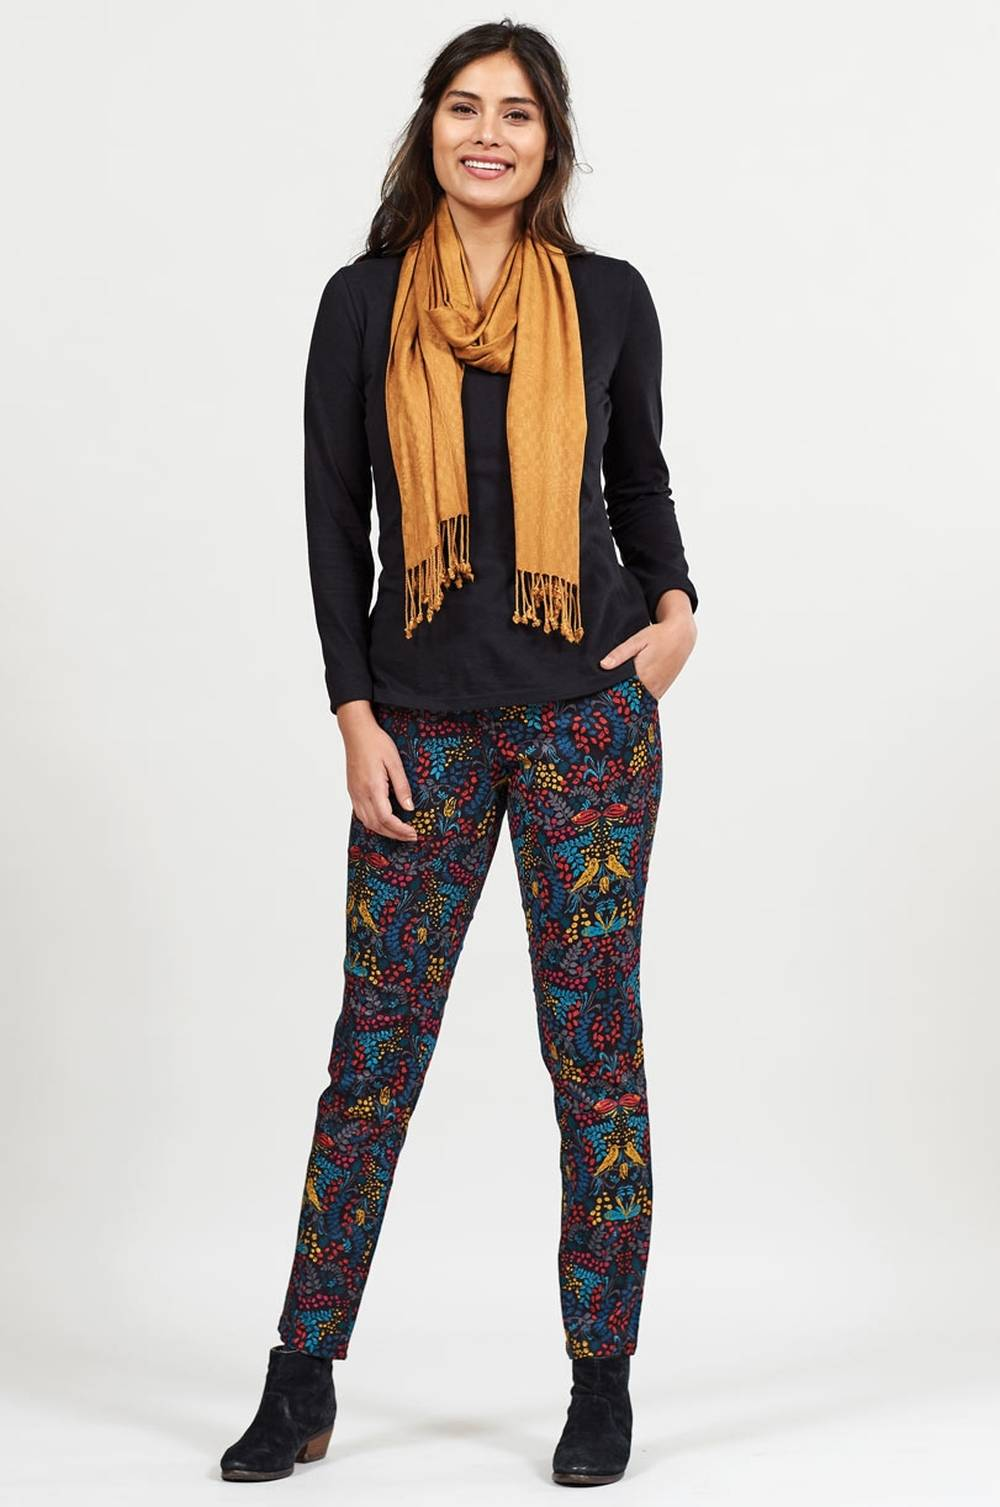 nomads clothing cute patterned pants